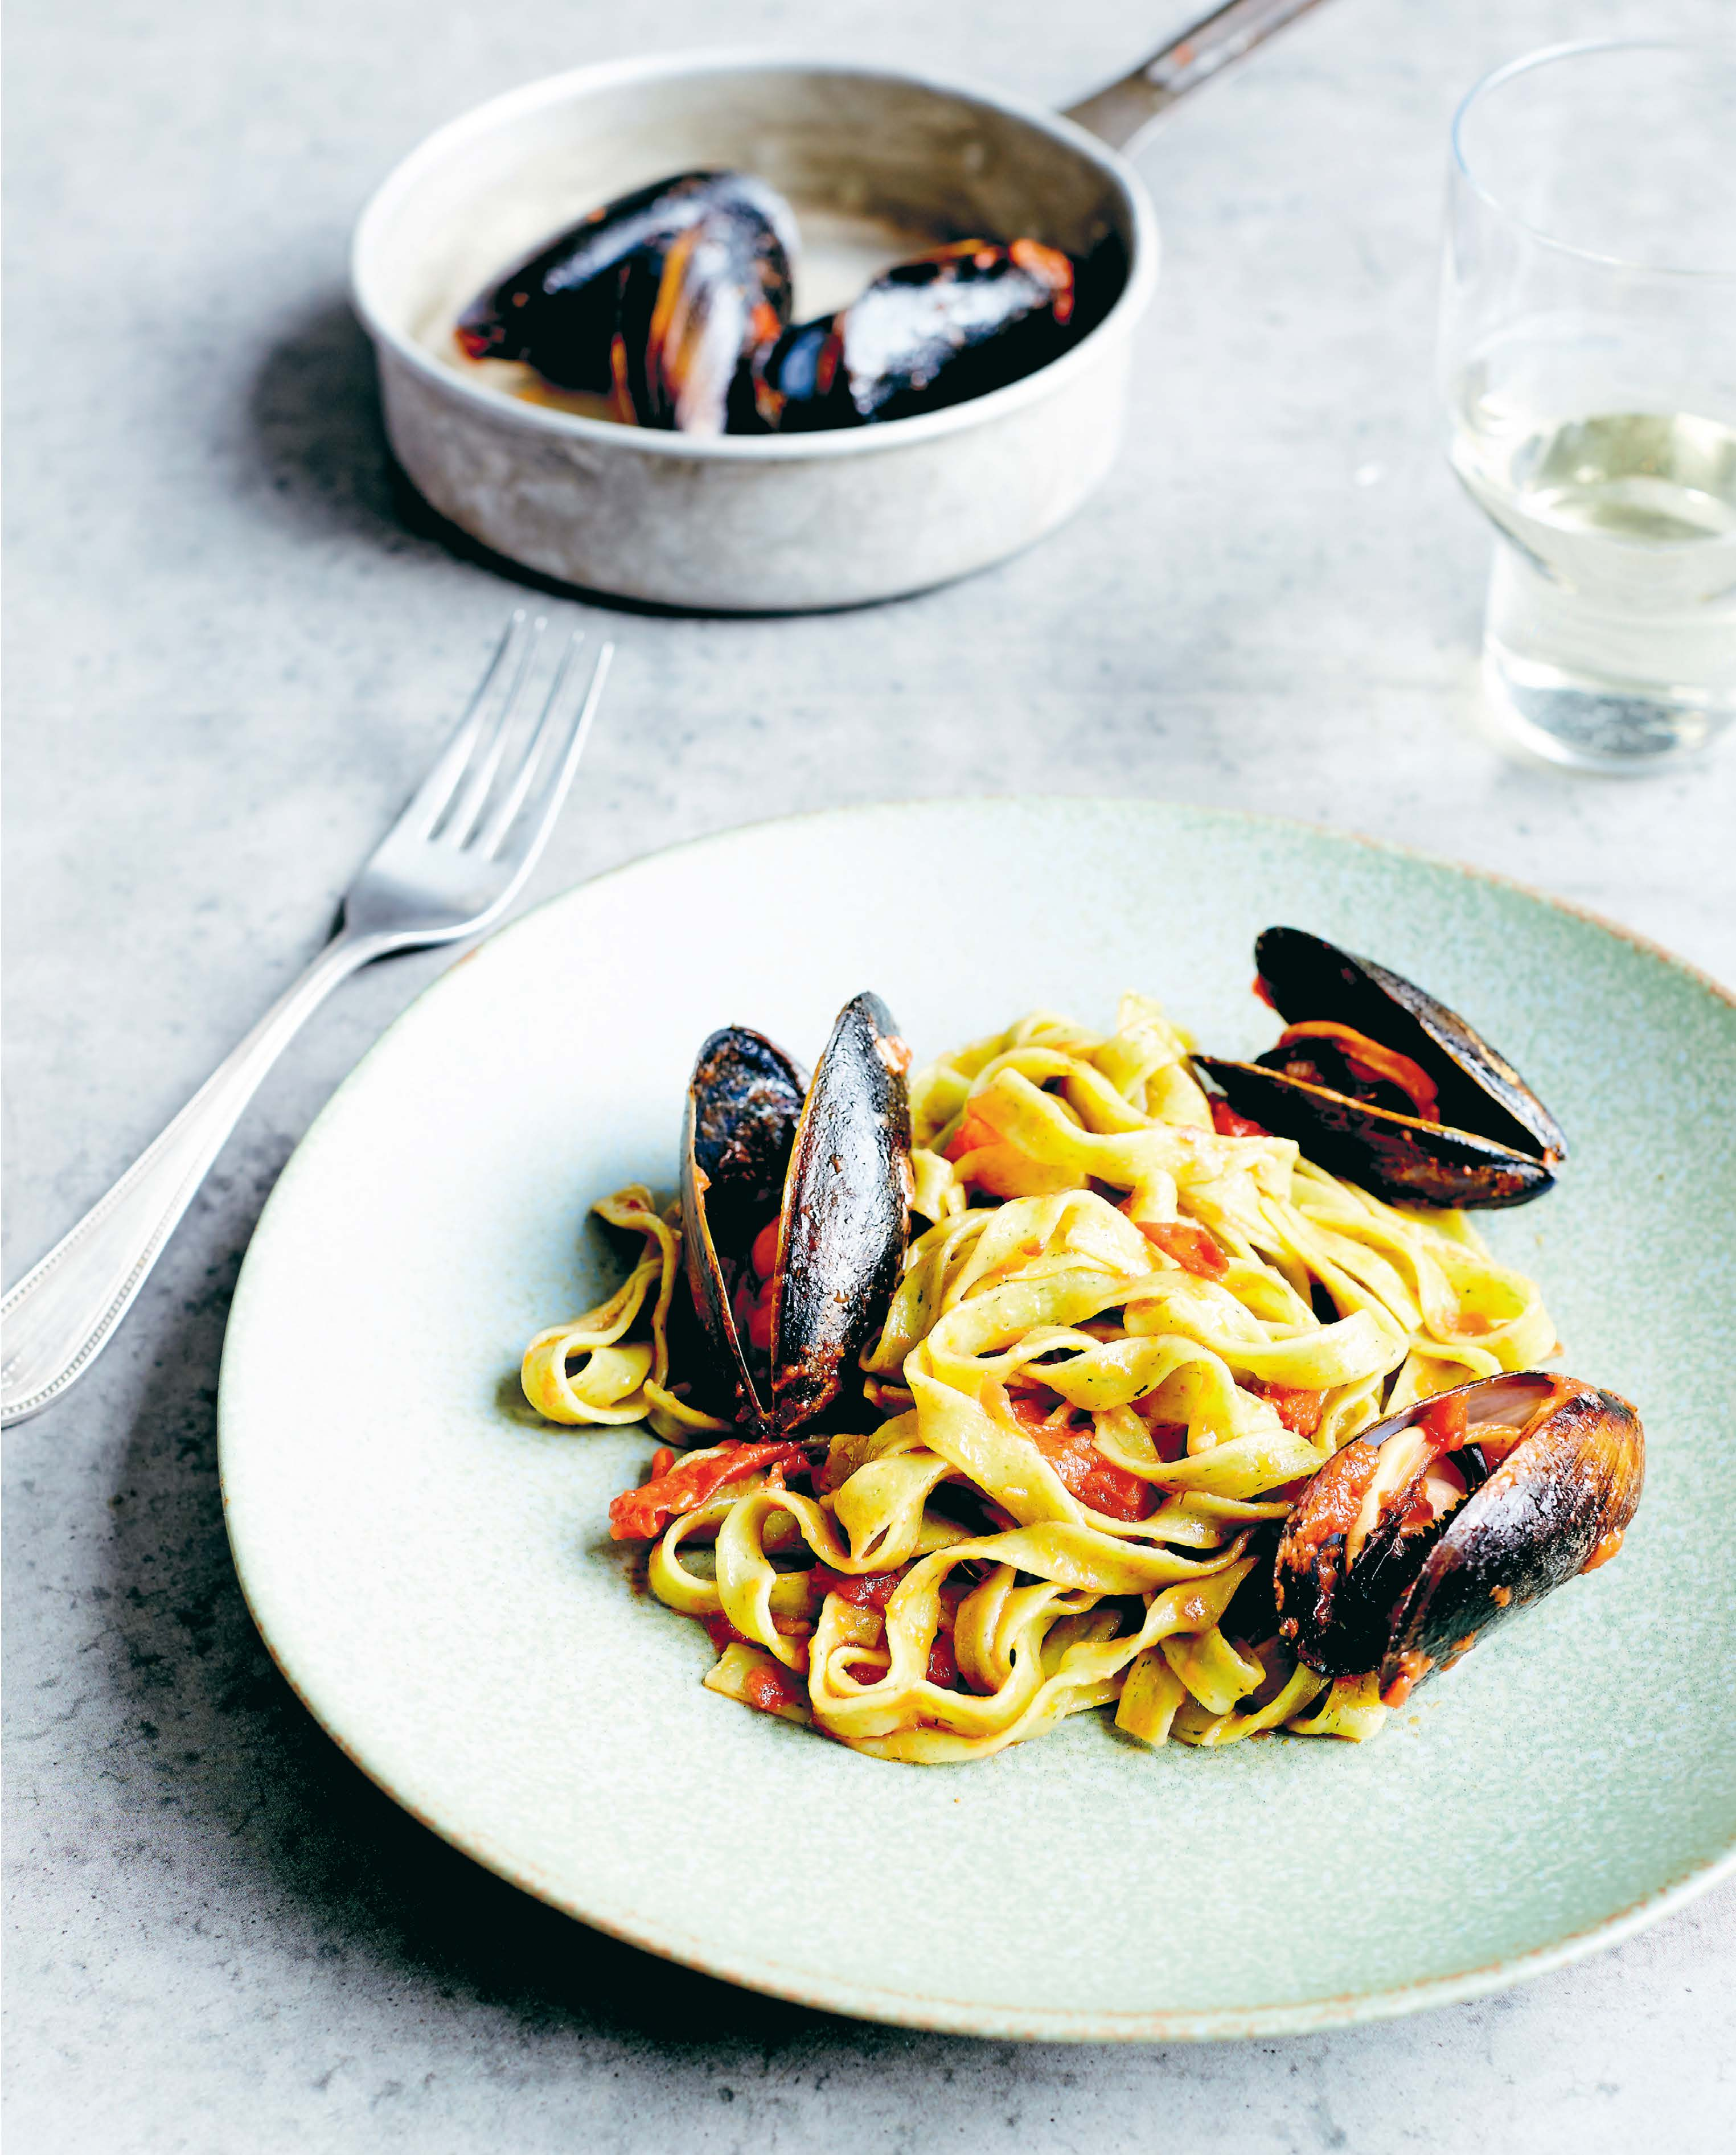 Mussel pasta with Dalmatian tomato sauce